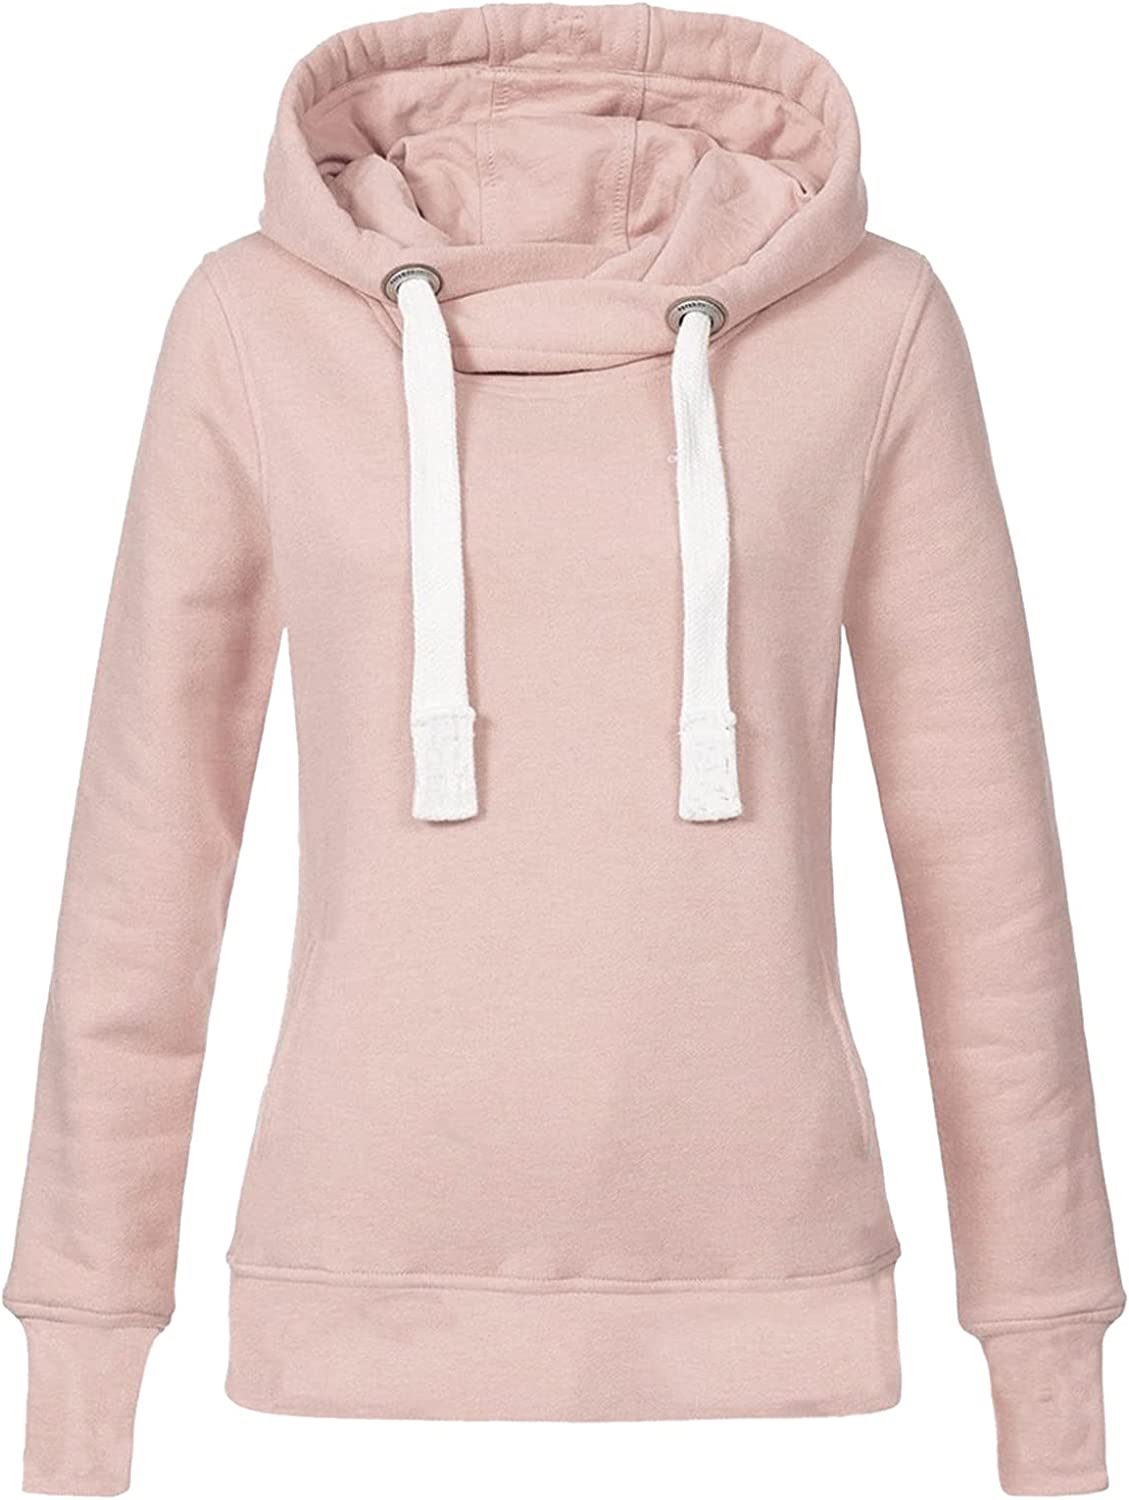 Choice Hoodies for Women 2021 Ranking TOP11 New Pullover Long Drawstring Solid Sleeve